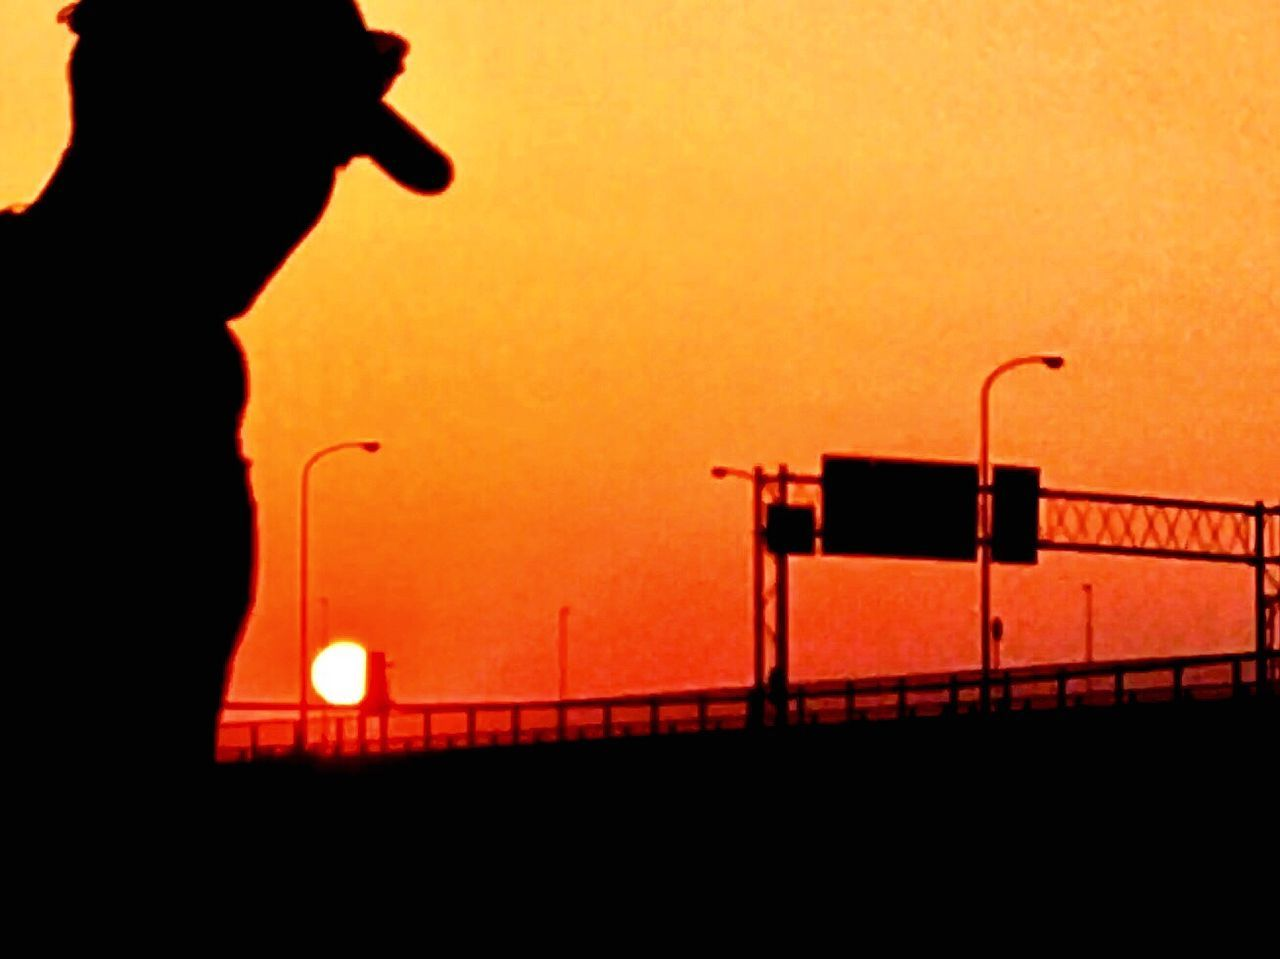 Sunset Runner Silhouette Standing One Person Sky Outdoors Clear Sky People One Man Only Adult Adults Only Day The Street Photographer - 2017 EyeEm Awards EyeEmNewHere The Portraitist - 2017 EyeEm Awards